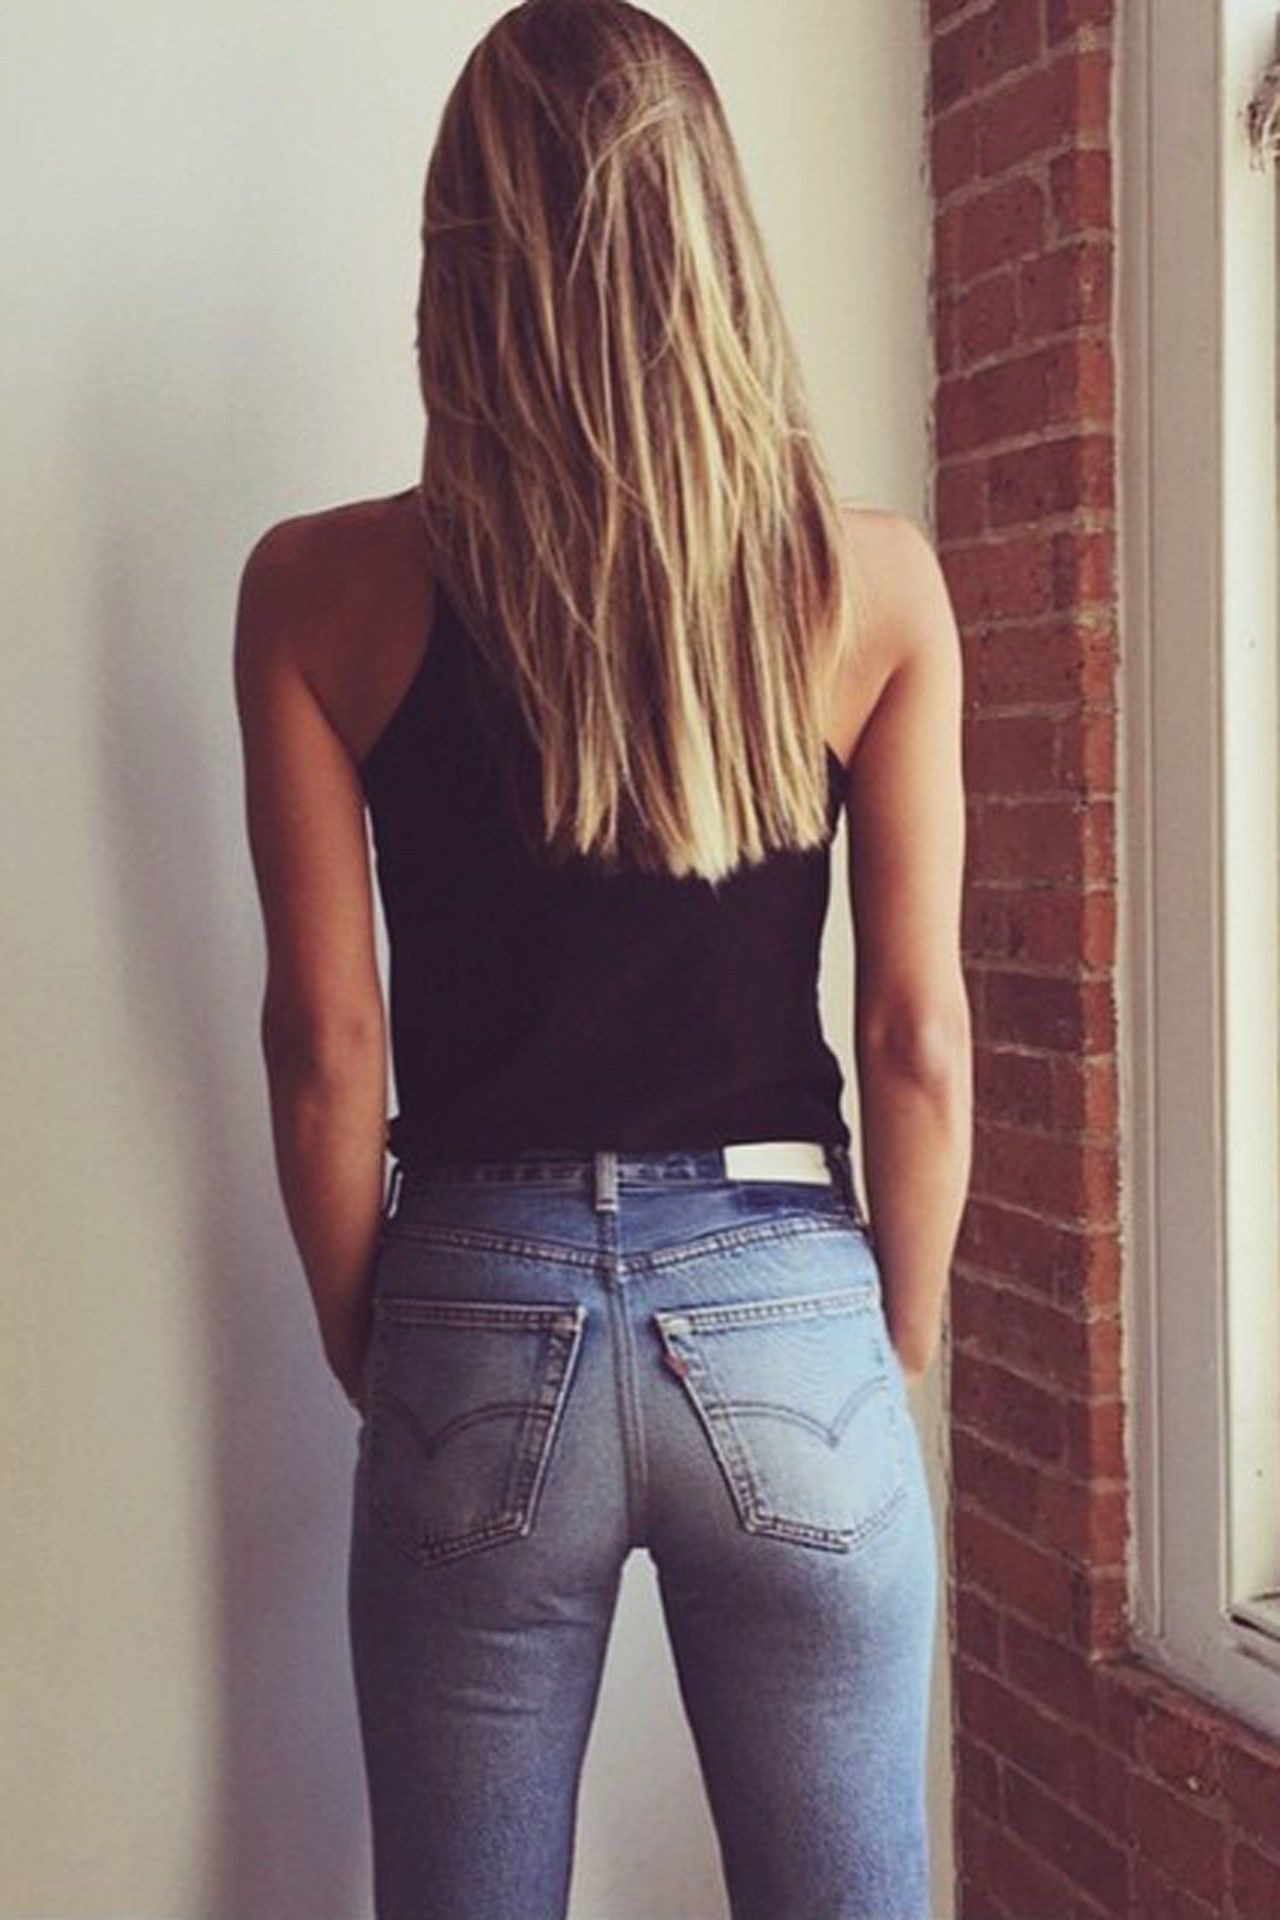 Teen jeans pic